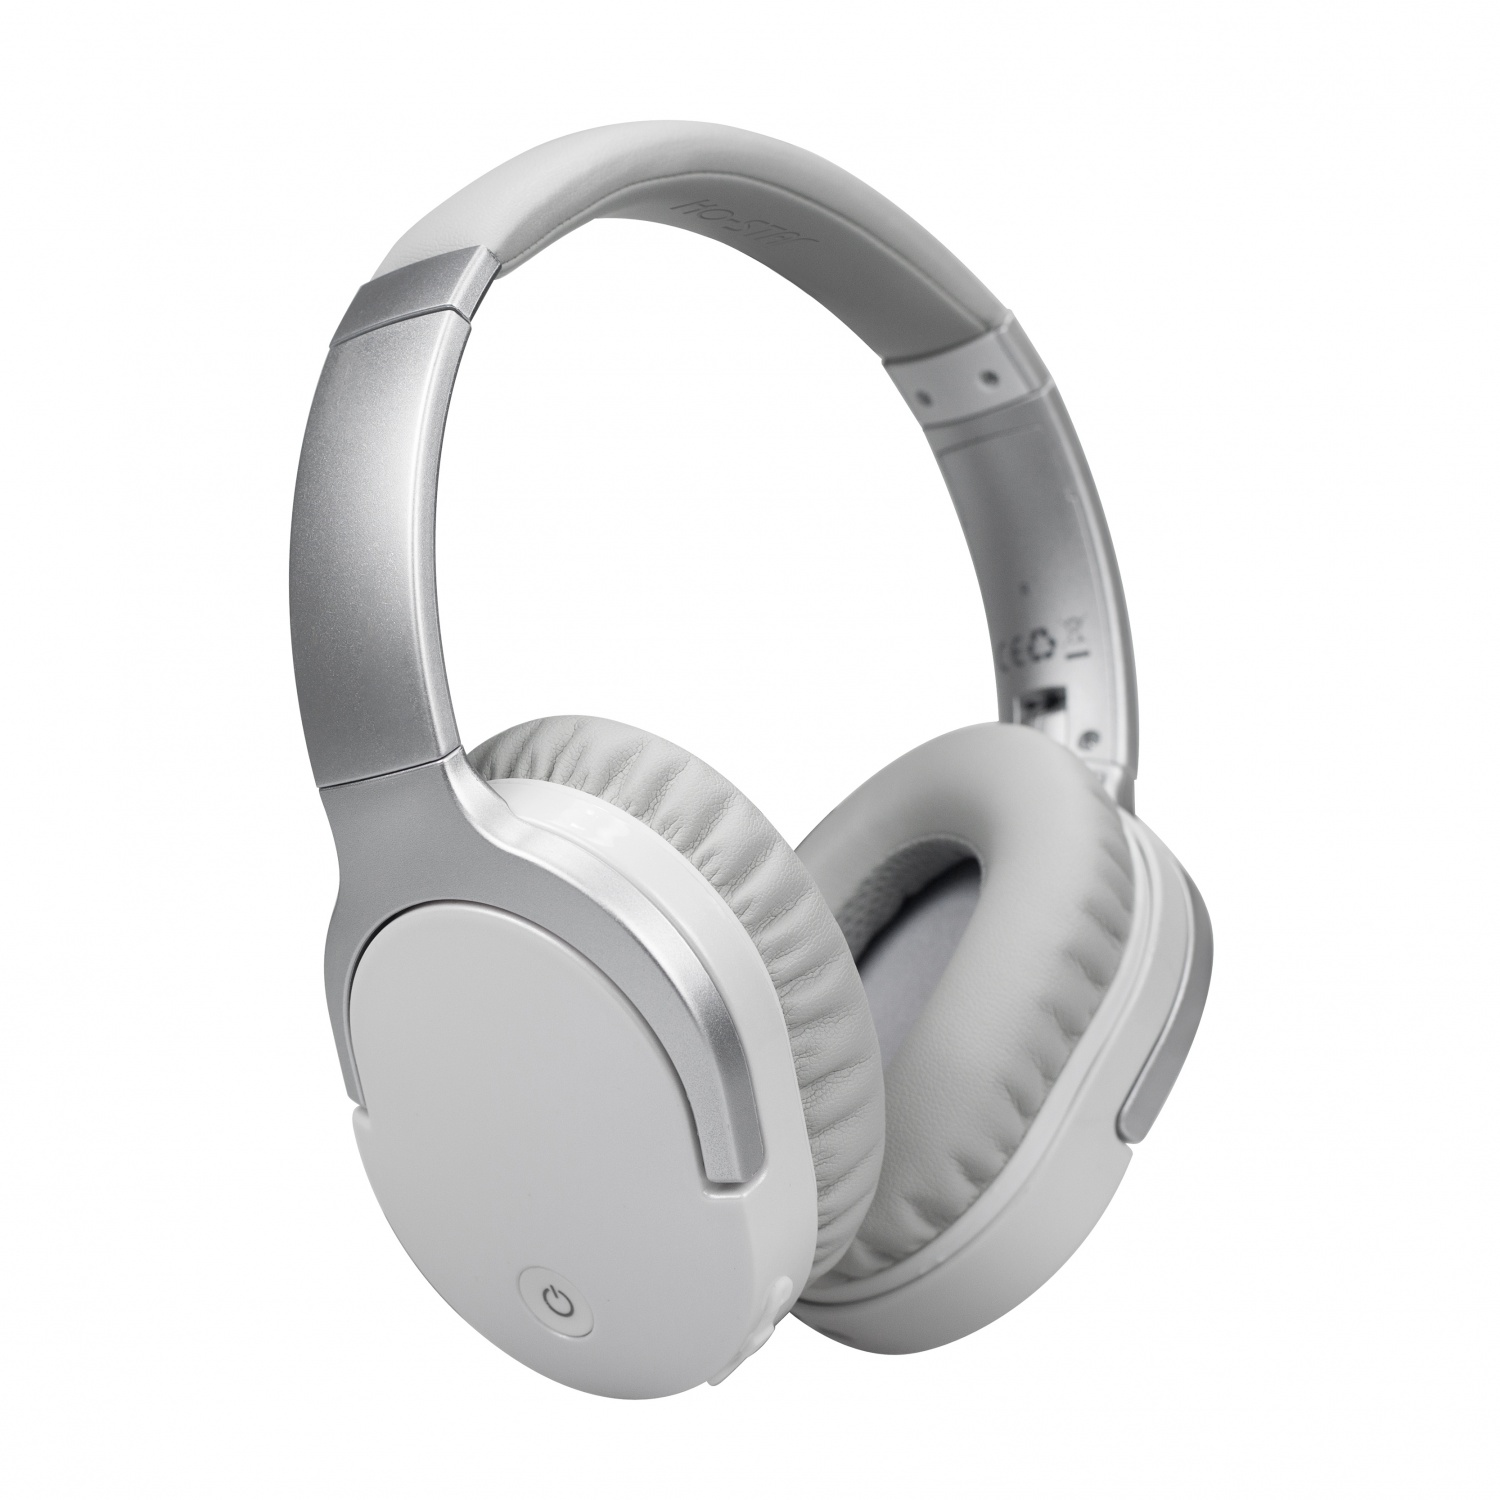 Smart Noise cancelling wireless headphone NB-1100FS